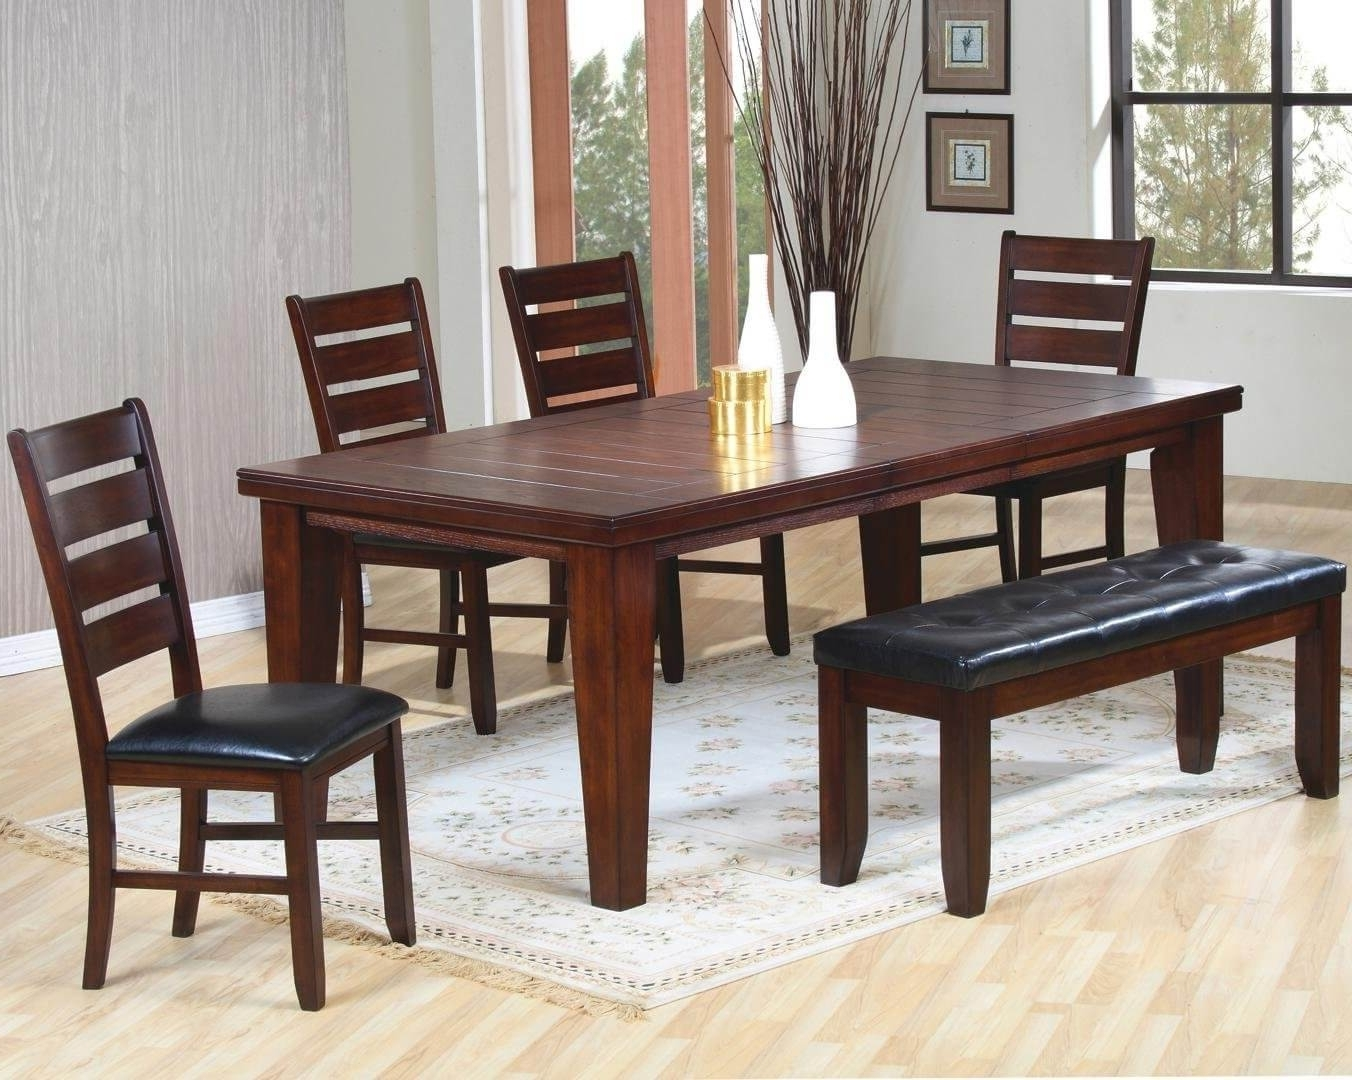 Most Recent Dining Tables For Six Intended For 26 Dining Room Sets (Big And Small) With Bench Seating (2018) (View 16 of 25)